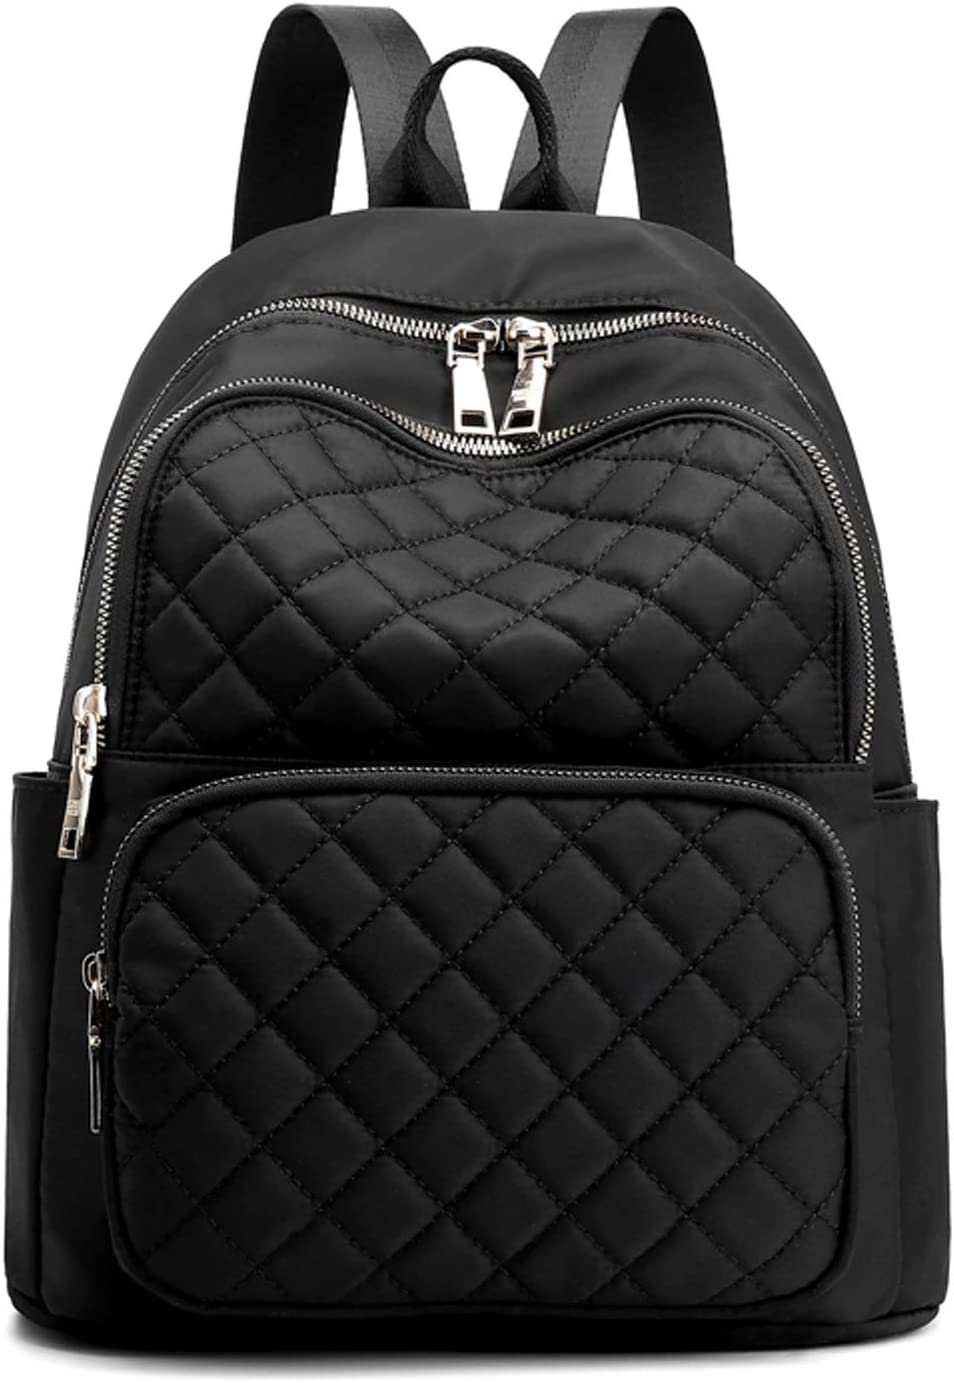 Fashion Backpacks for Women - Purse Travel Quilte Nylon 5 ☆ very popular Backpack safety